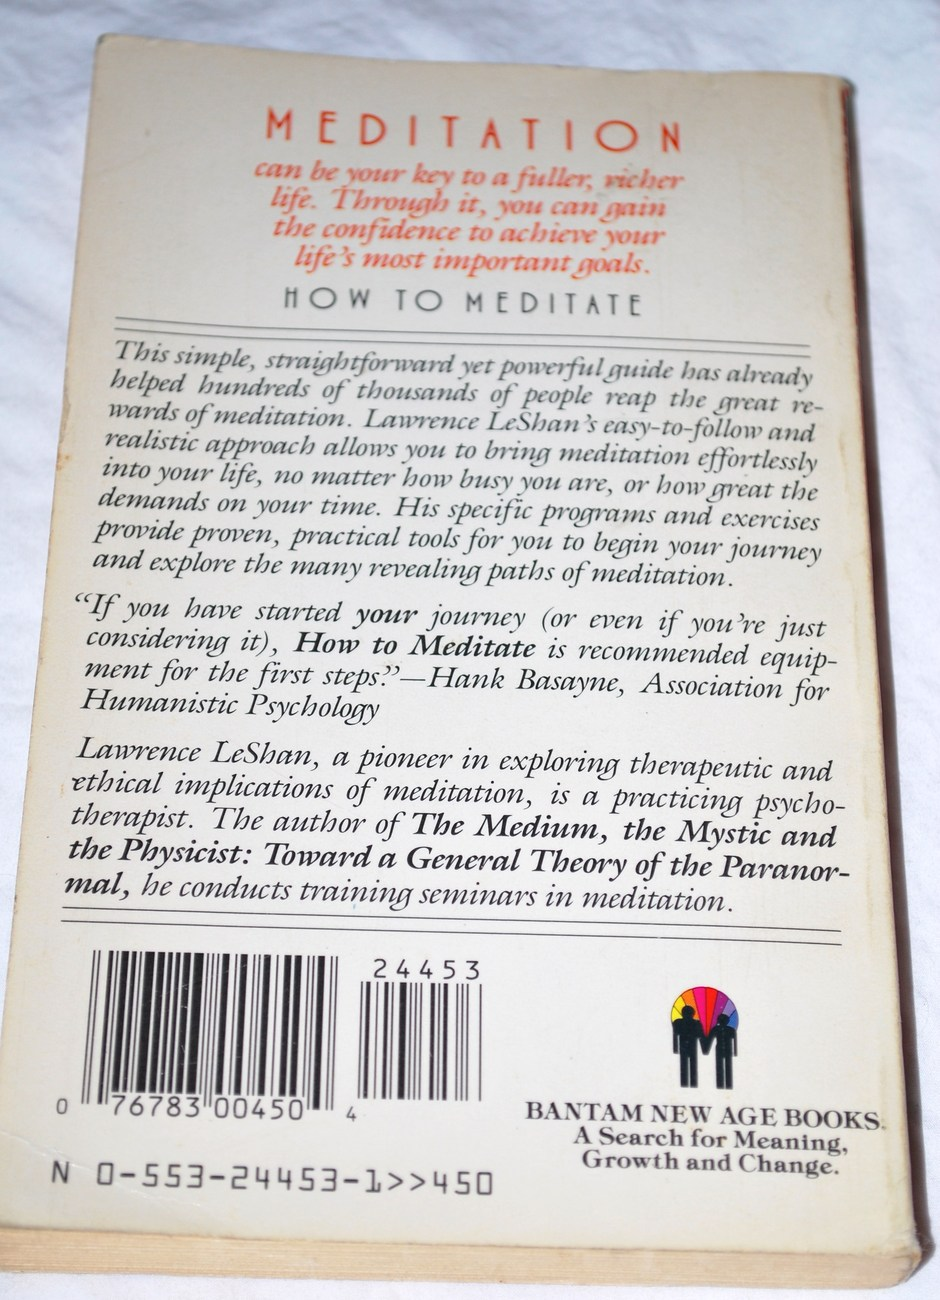 How_to_meditate_paperback_book_back